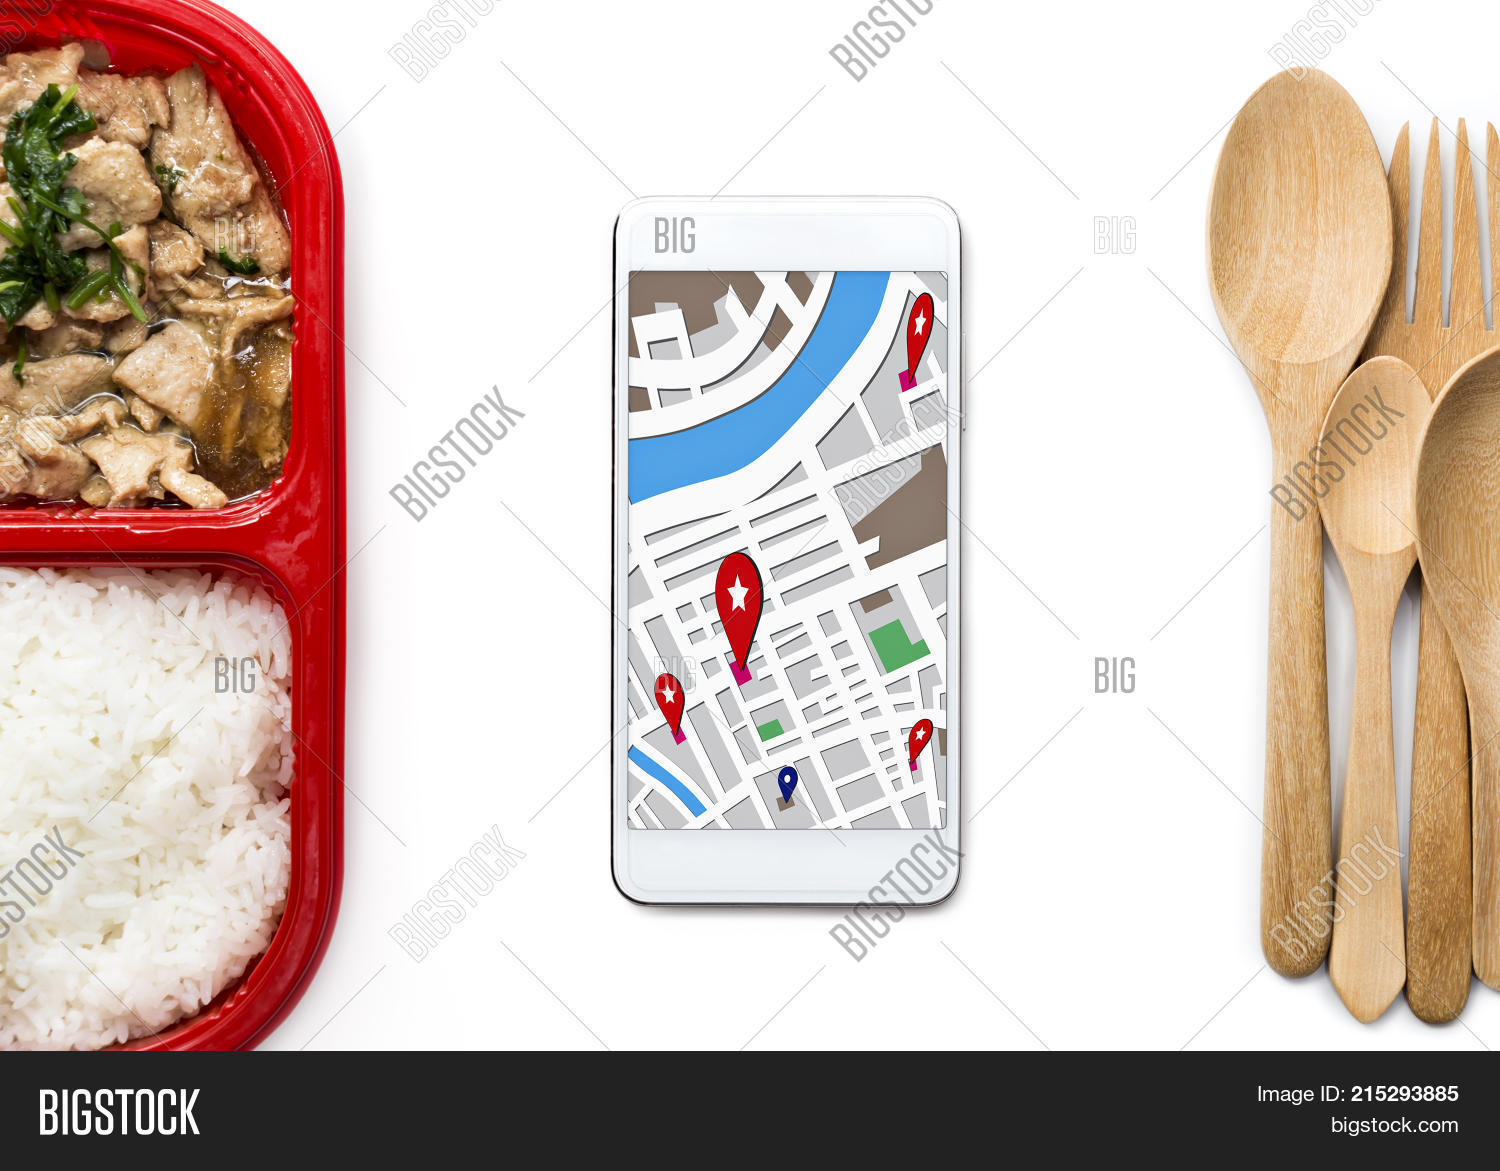 Food Delivery Service Image & Photo (Free Trial) | Bigstock